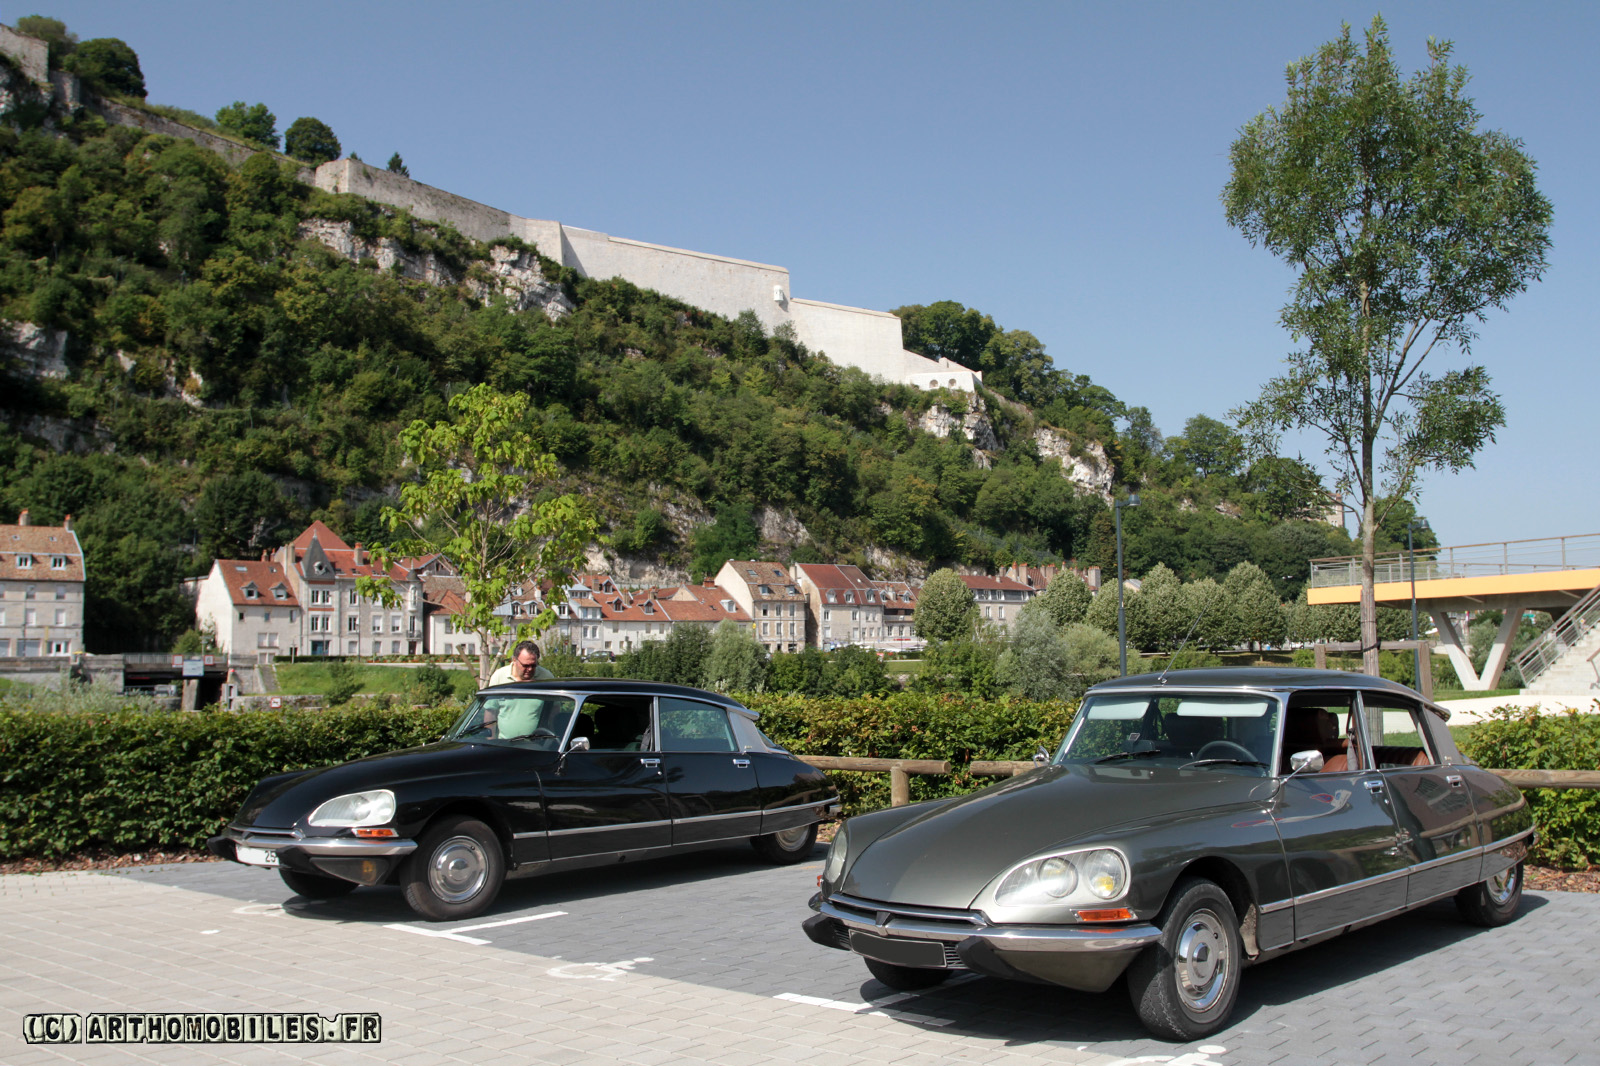 Rencontre auto antique st-jerome